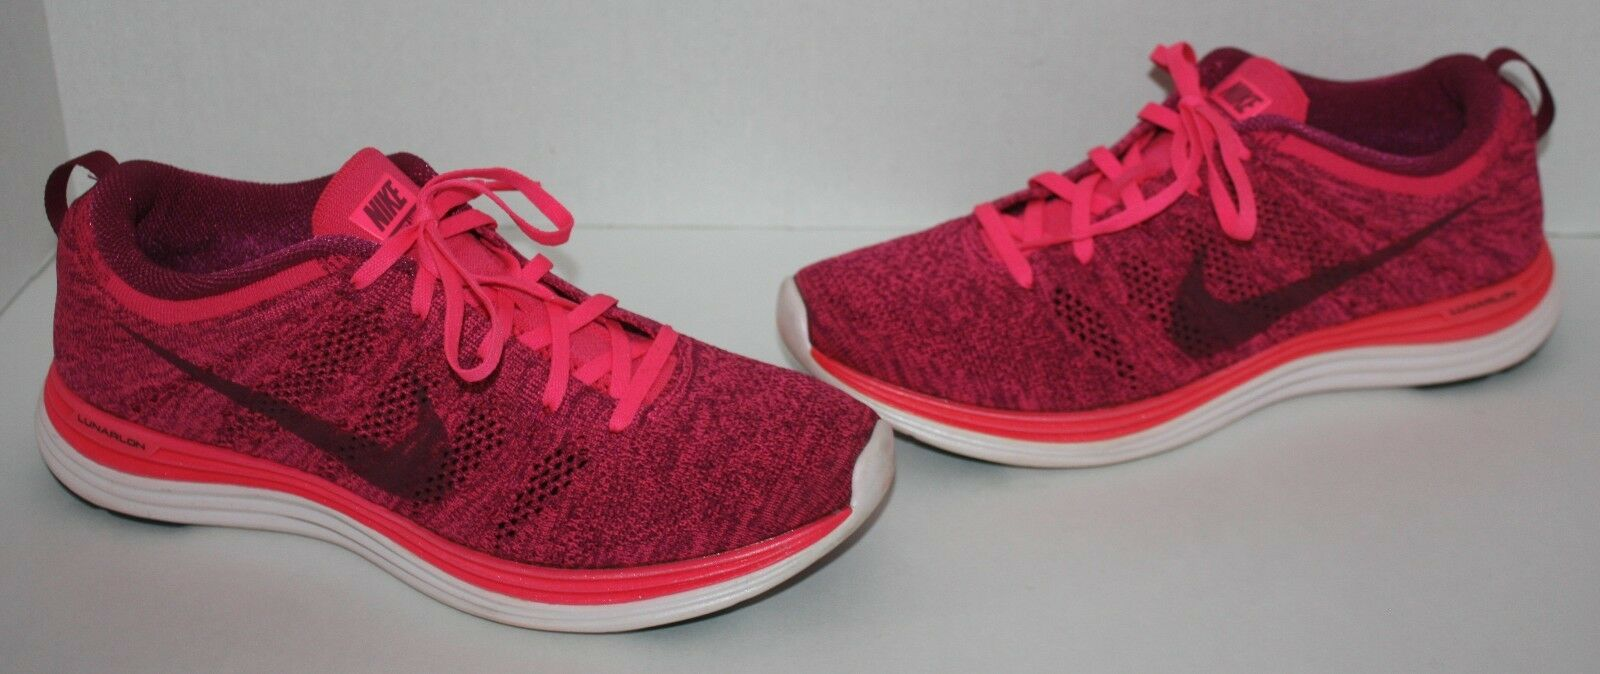 Womens NIKE Flyknit Lunar 1 Neon Pink Violet Athletic Shoes Size 9.5